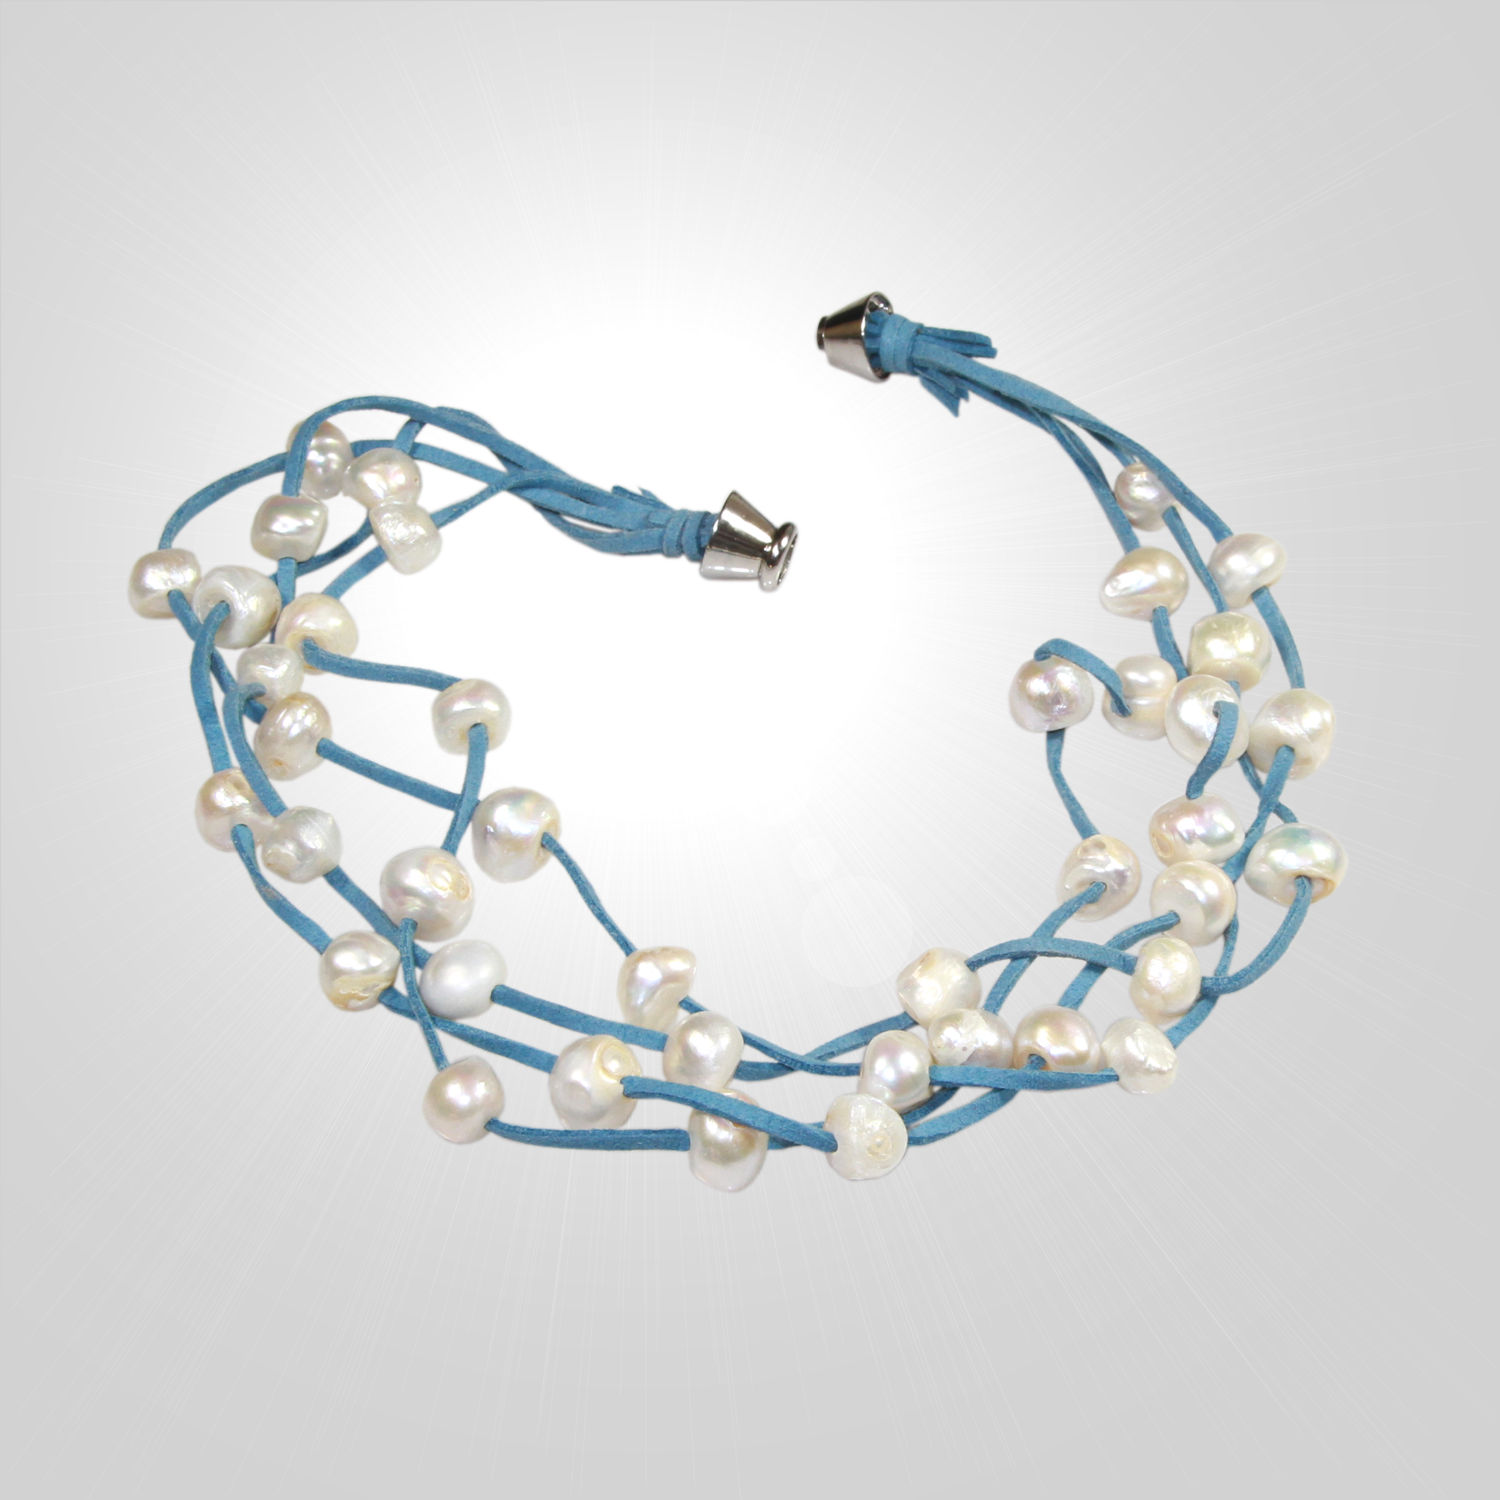 esprit-sky-necklace.jpg